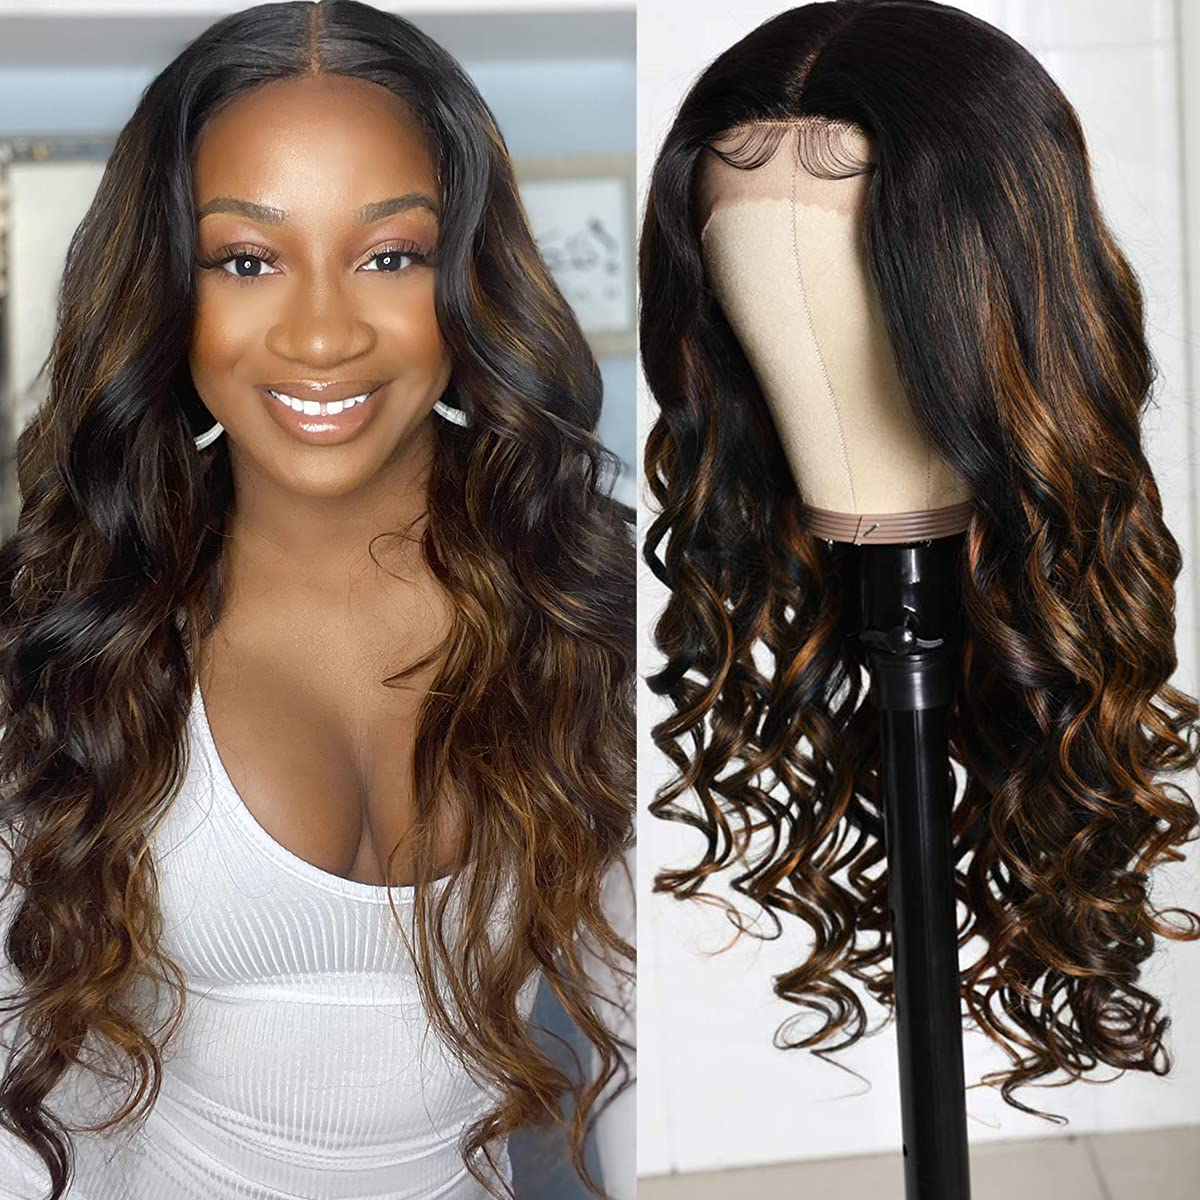 Julia Highlight In stock Lace Front Wigs Body New popularity Wig for Bla Wave Hair Human